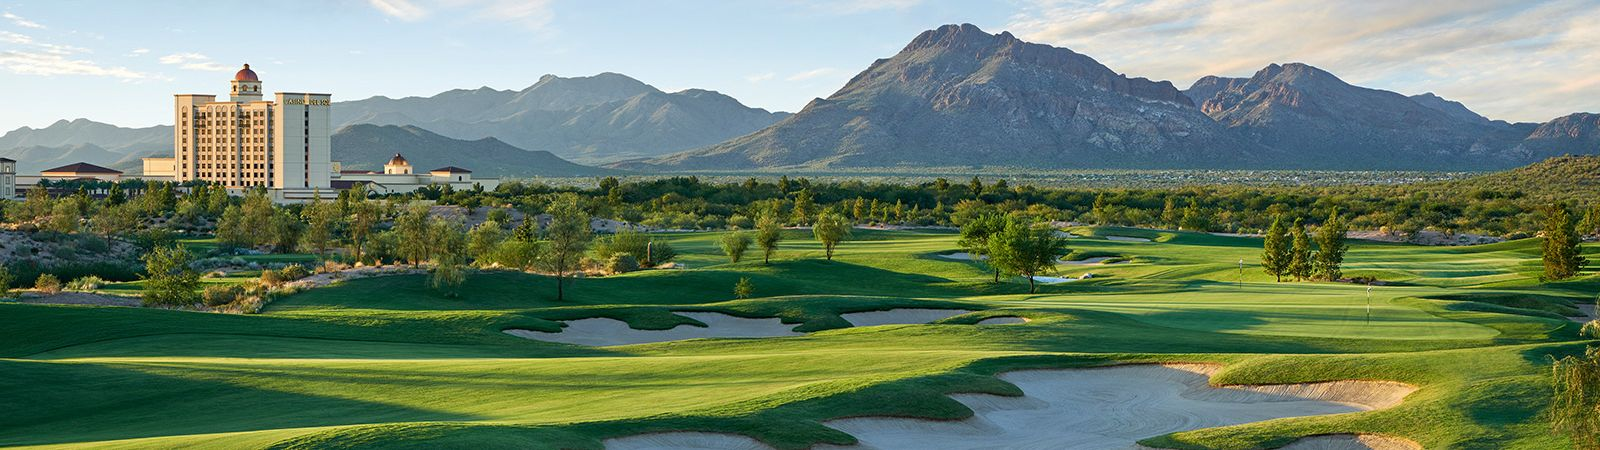 Golf Hotel Packages in Tucson Arizona